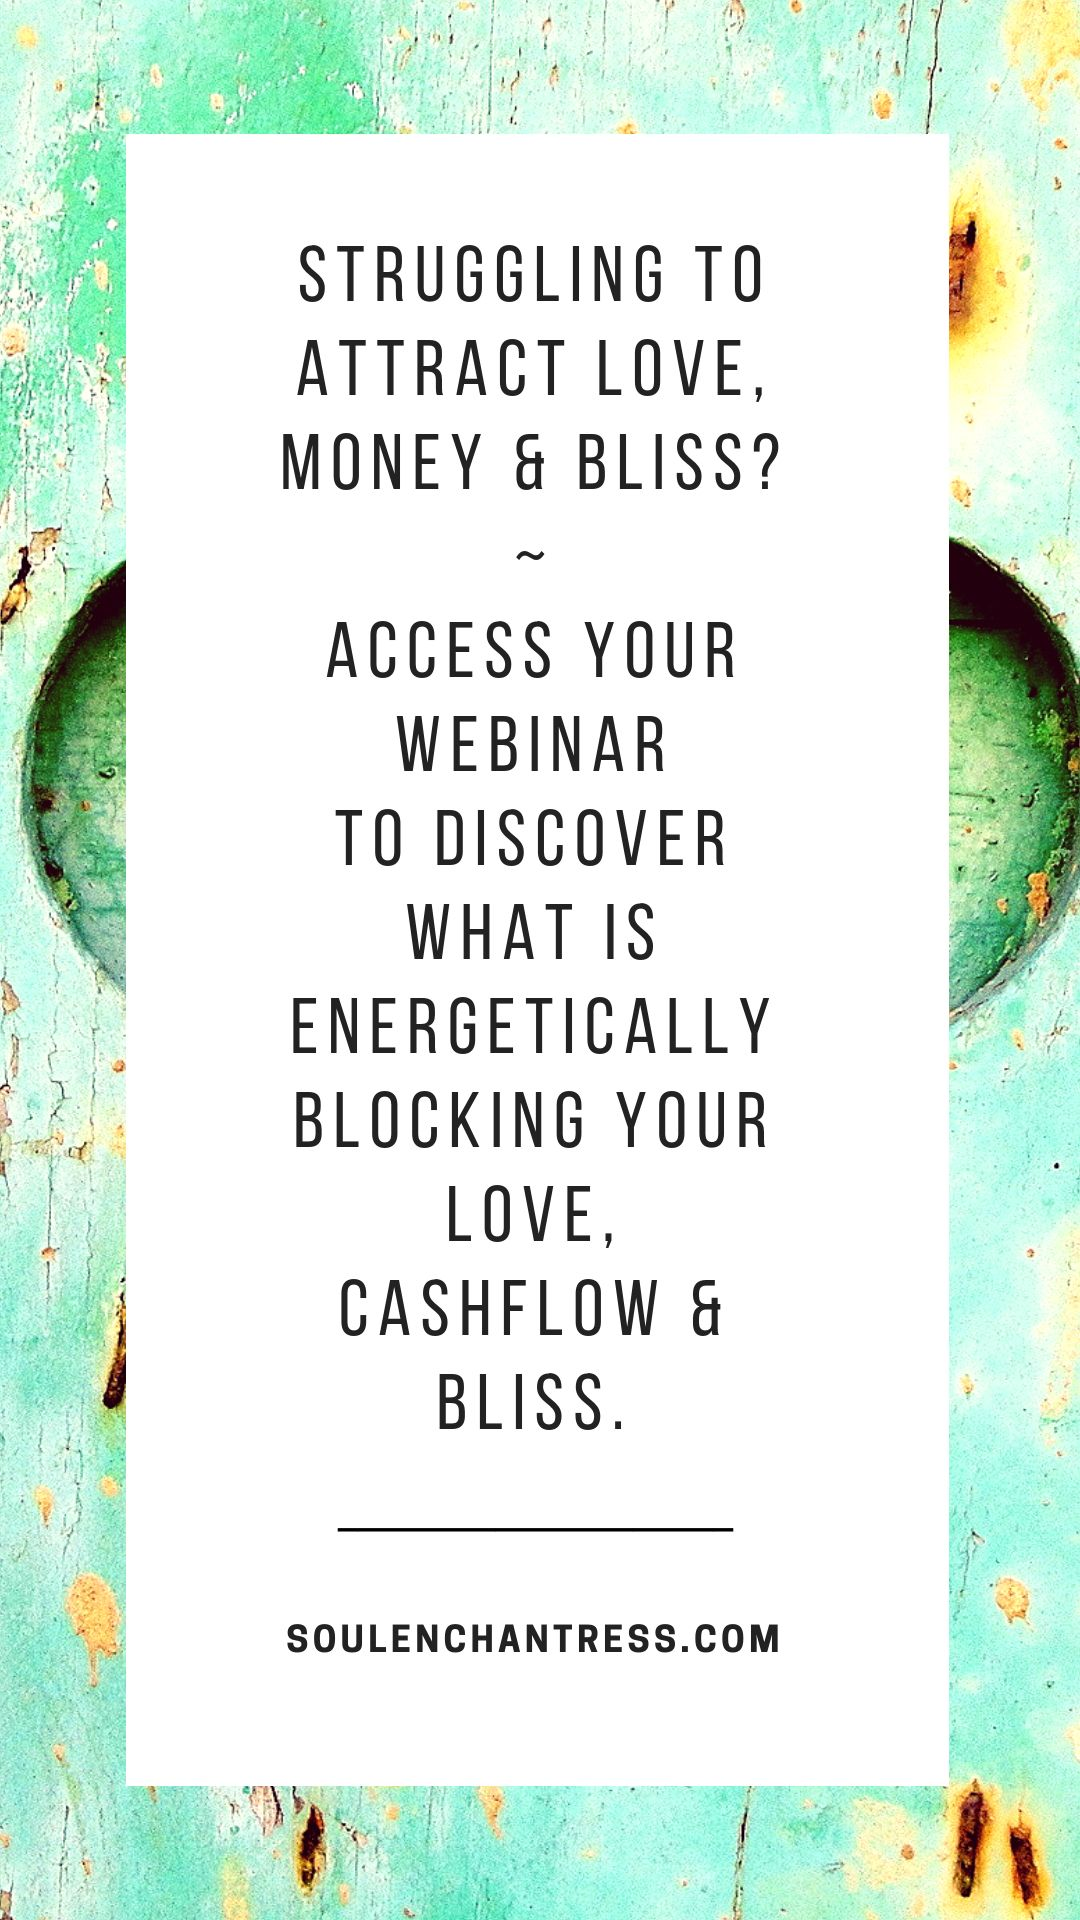 Clear Energy Blocks By Identifying Them With This Webinar In My Shop Healing From A Breakup Emotional Healing Couple Goals Relationships